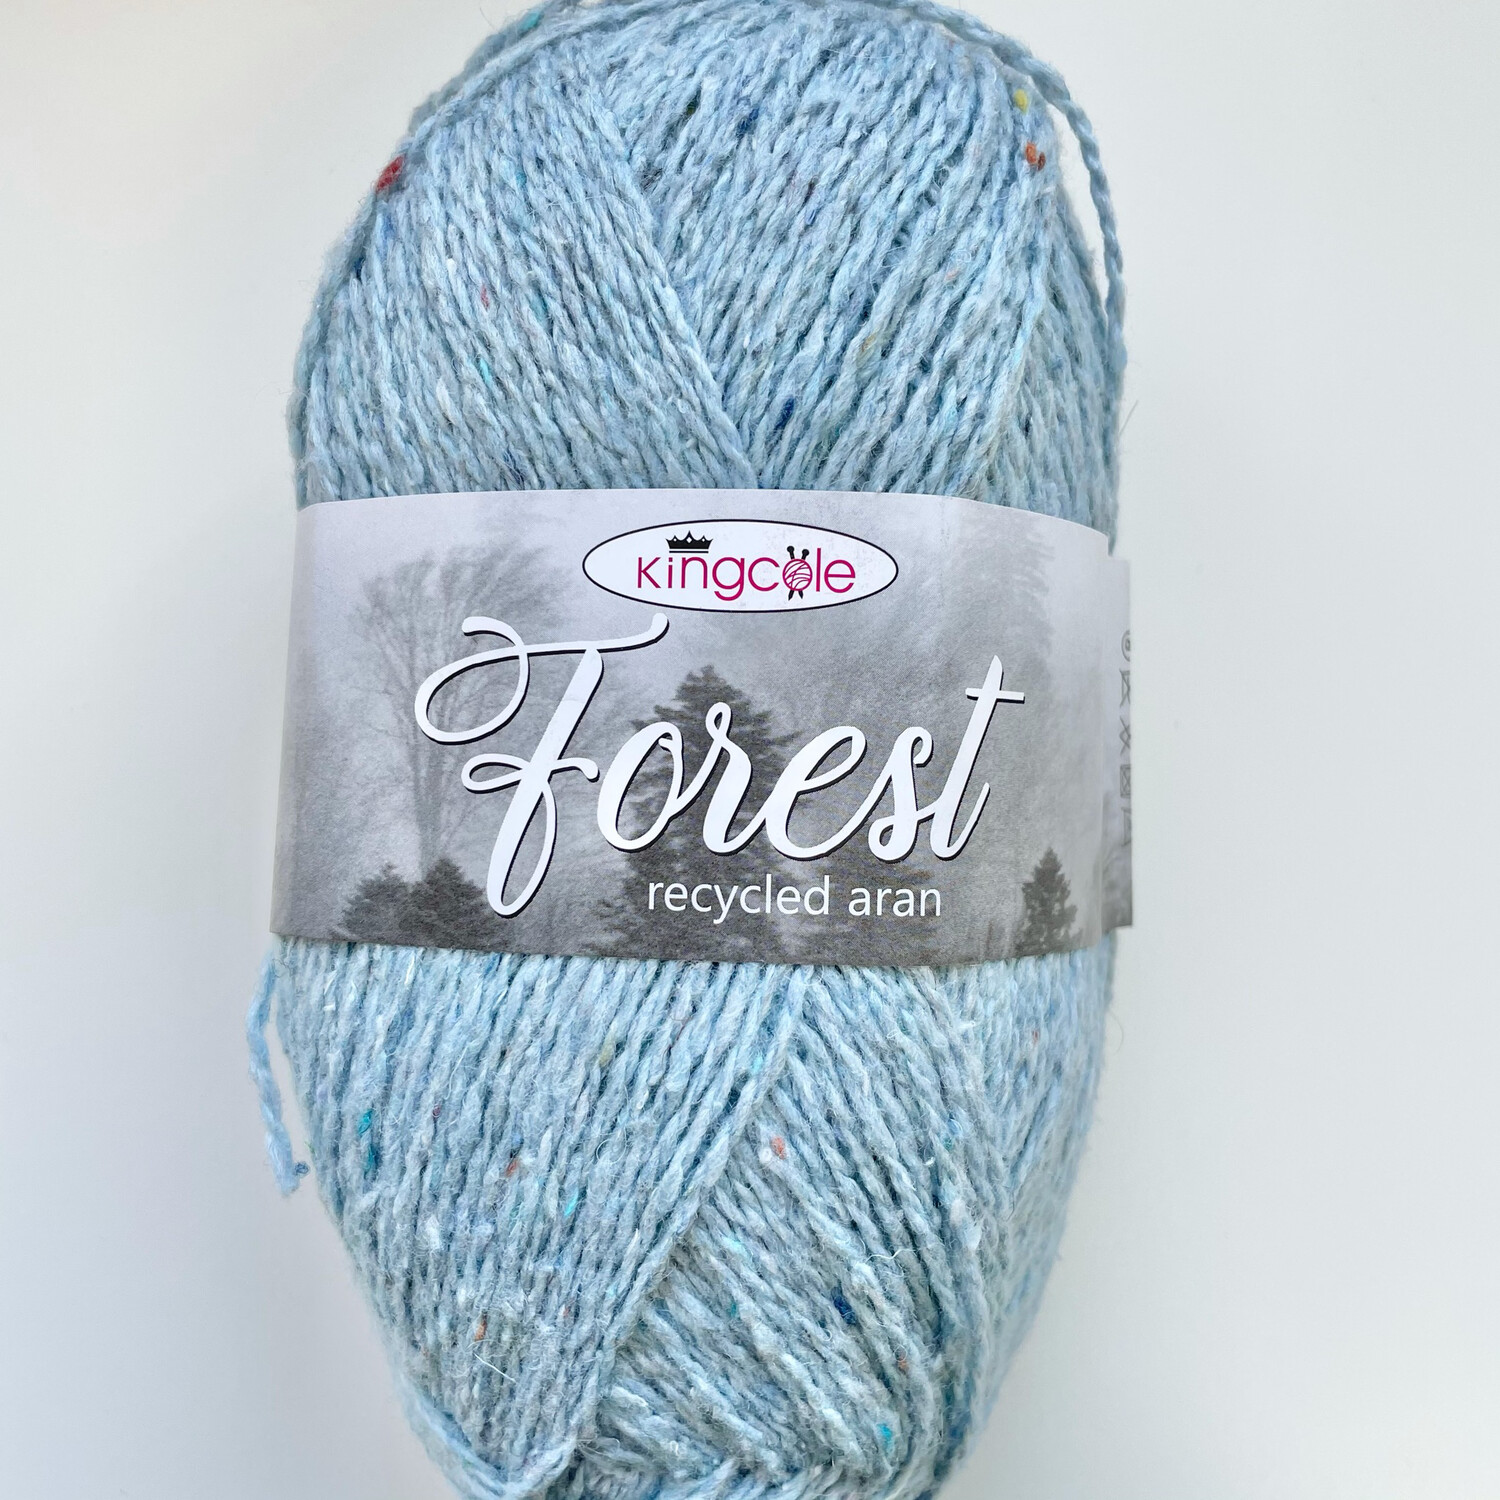 King Cole Forest Aran 100% Recycled Yarn containing 35% Wool - Balvain Forest